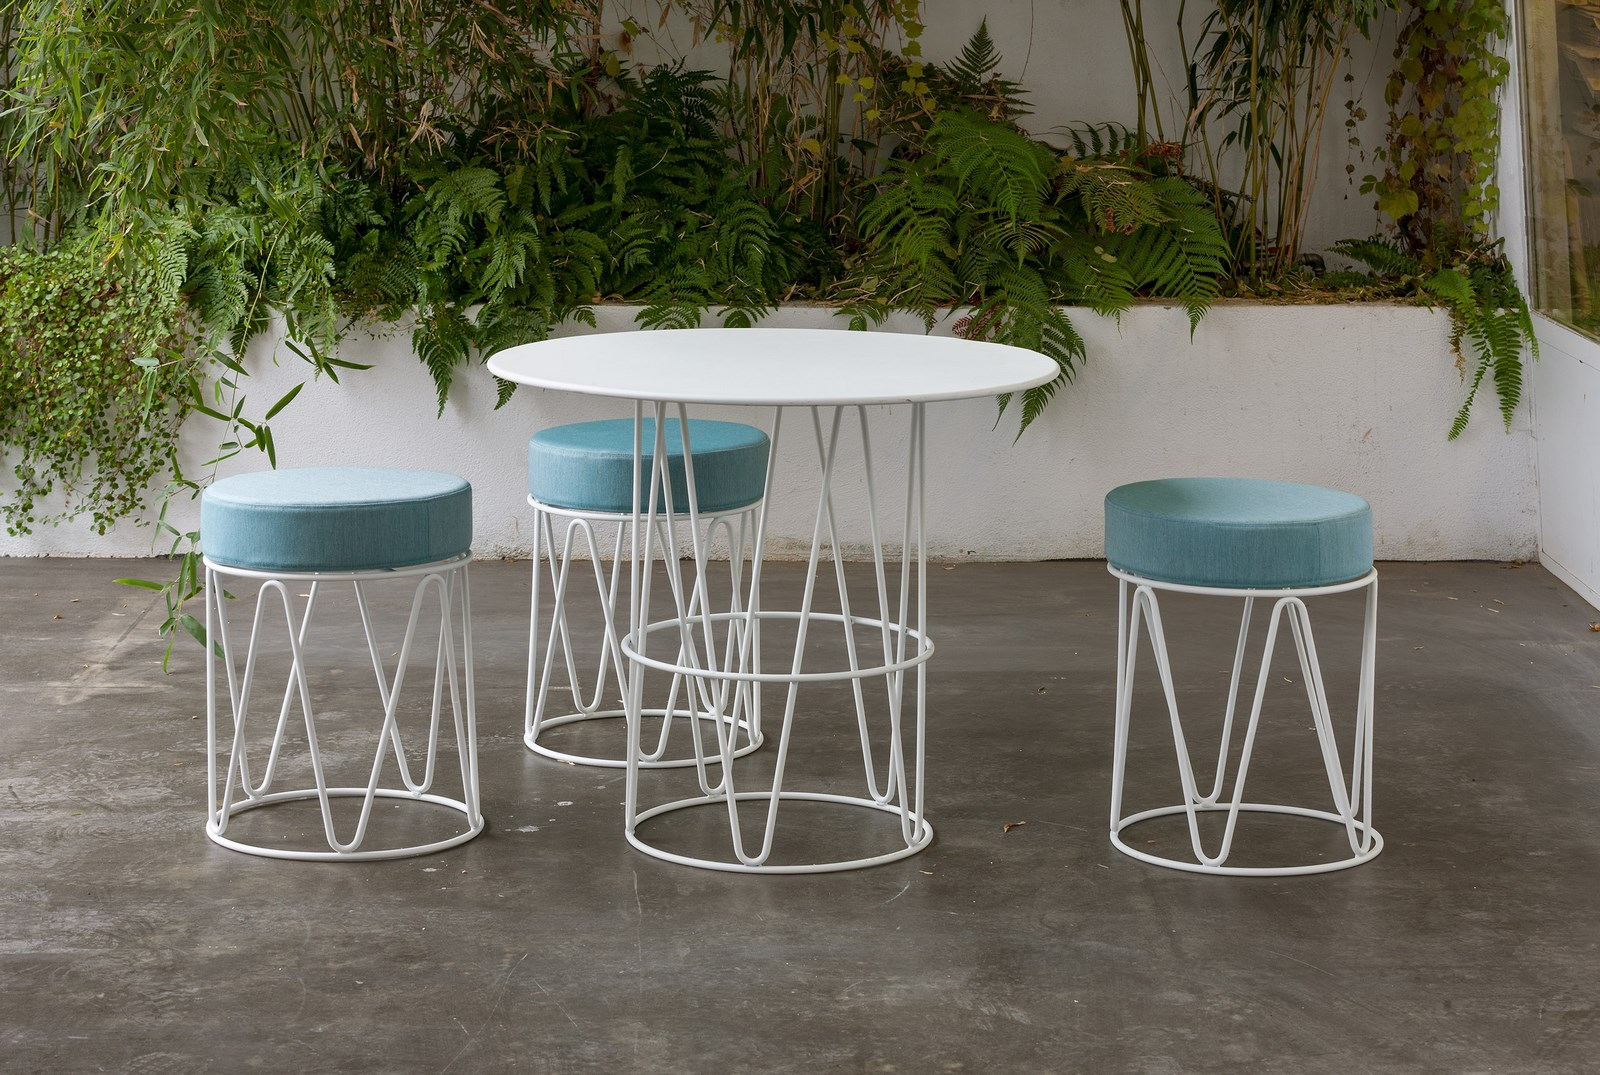 iSiMAR_Lagarto stools and table (Copy)